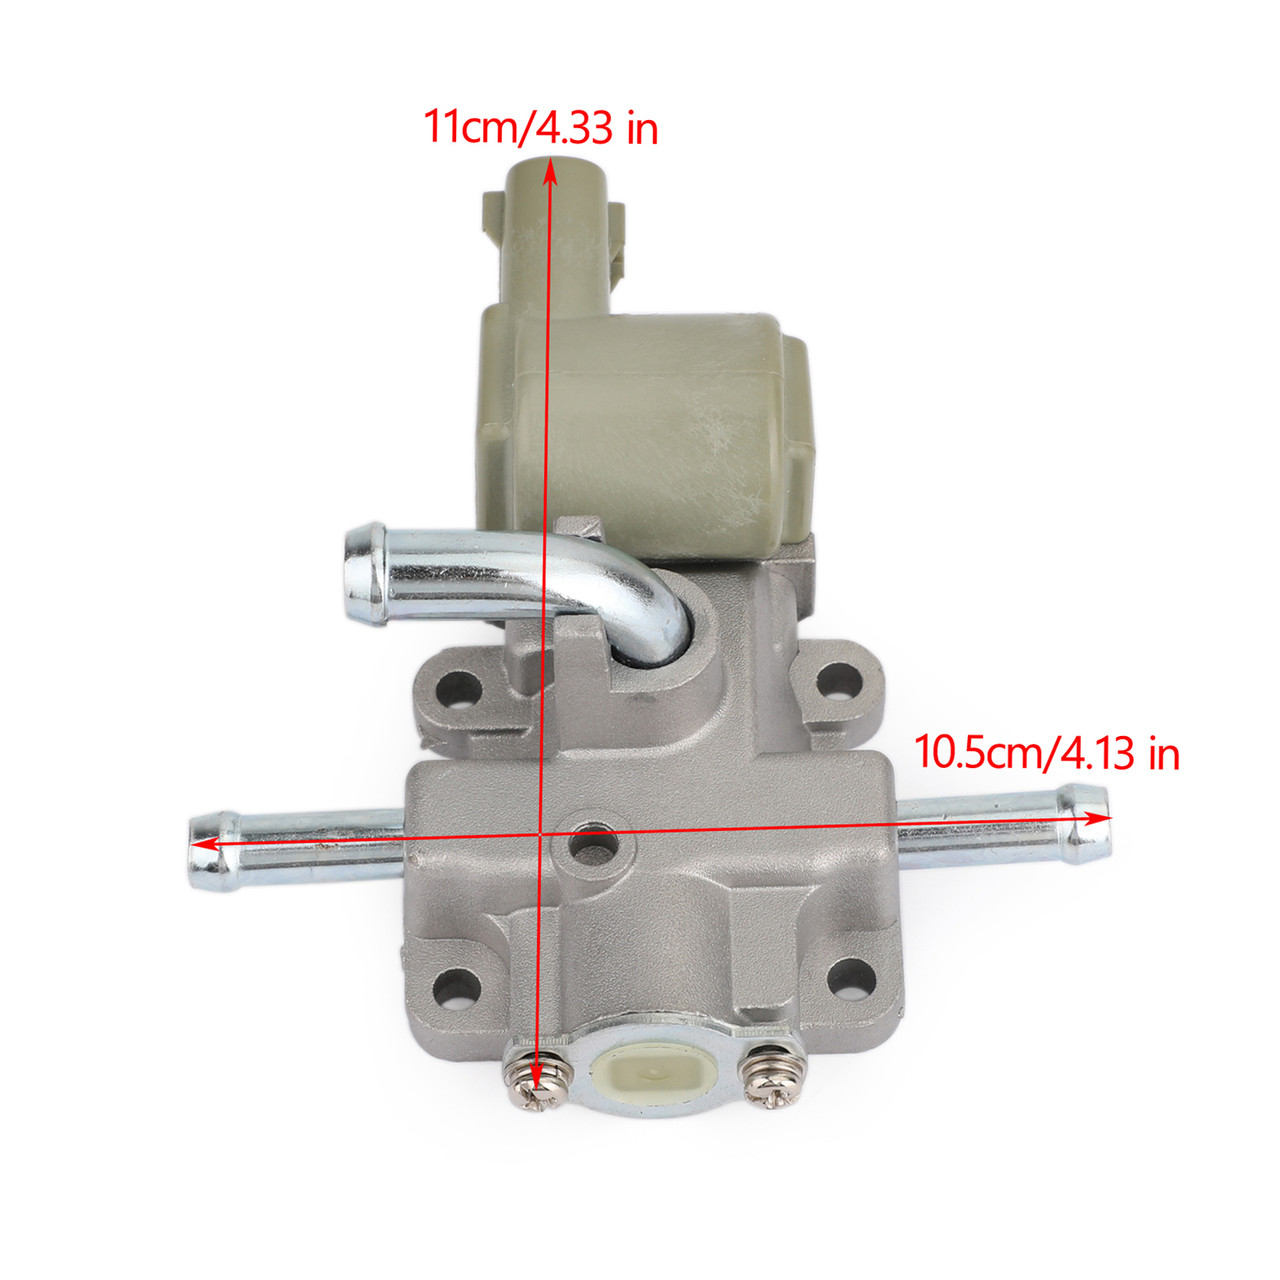 Idle Air Control Valve for Toyota 4Runner 96-00 T100 97-98 Tacoma 97-04 Tundra 00-03 22270-62050